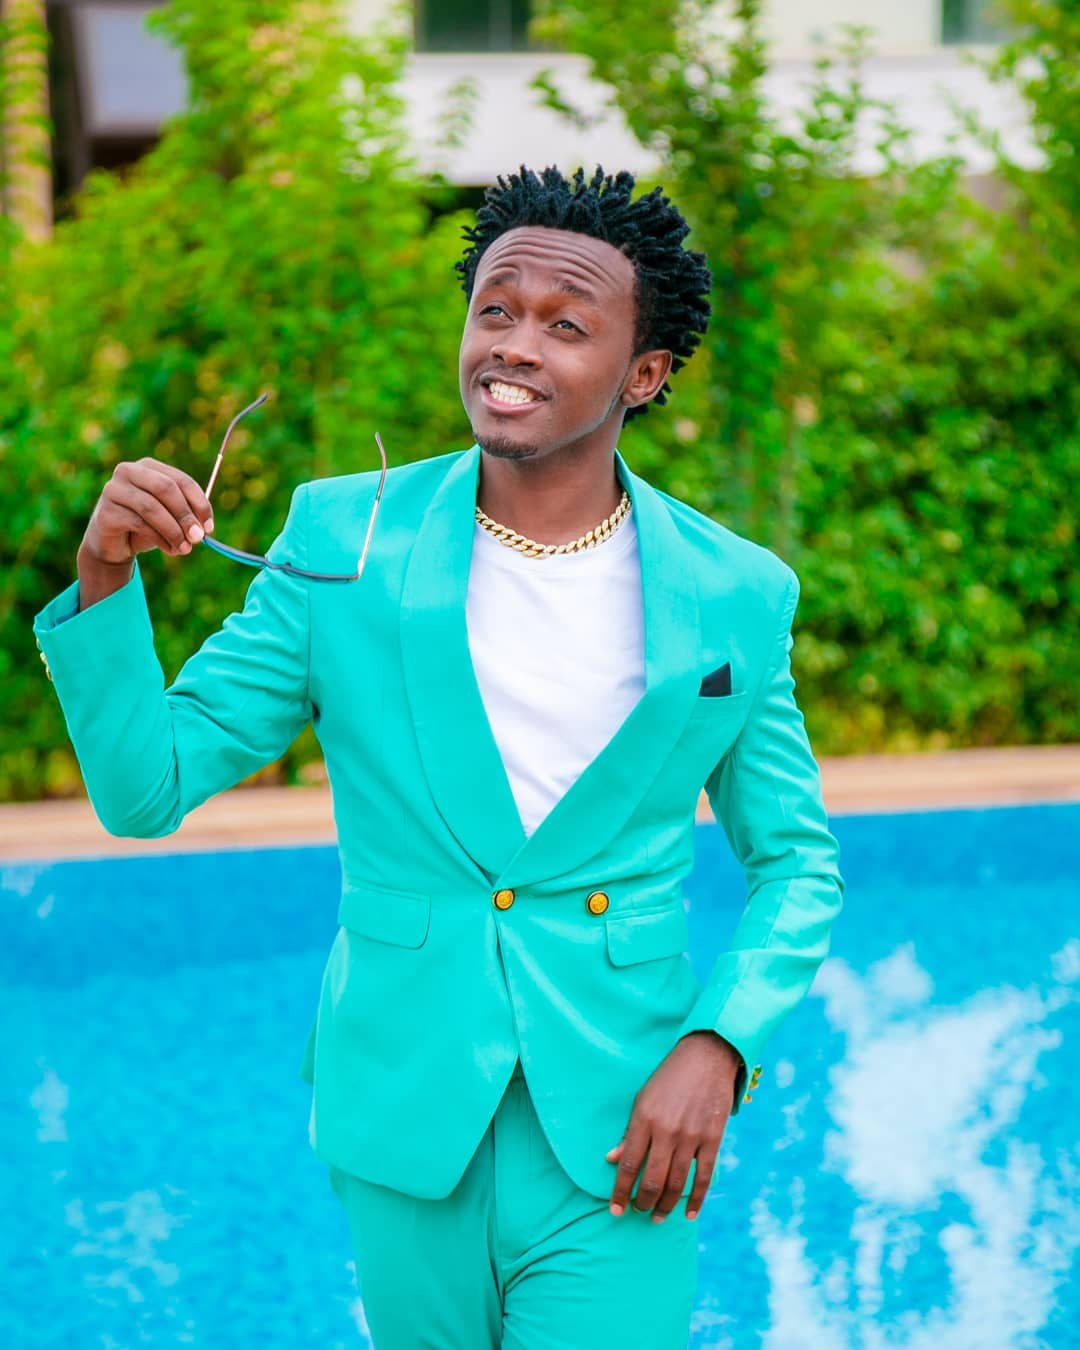 Bahati sets out conditions for working with Diamond - Diamond unasikia? Bahati sets conditions for working with Wasafi CEO